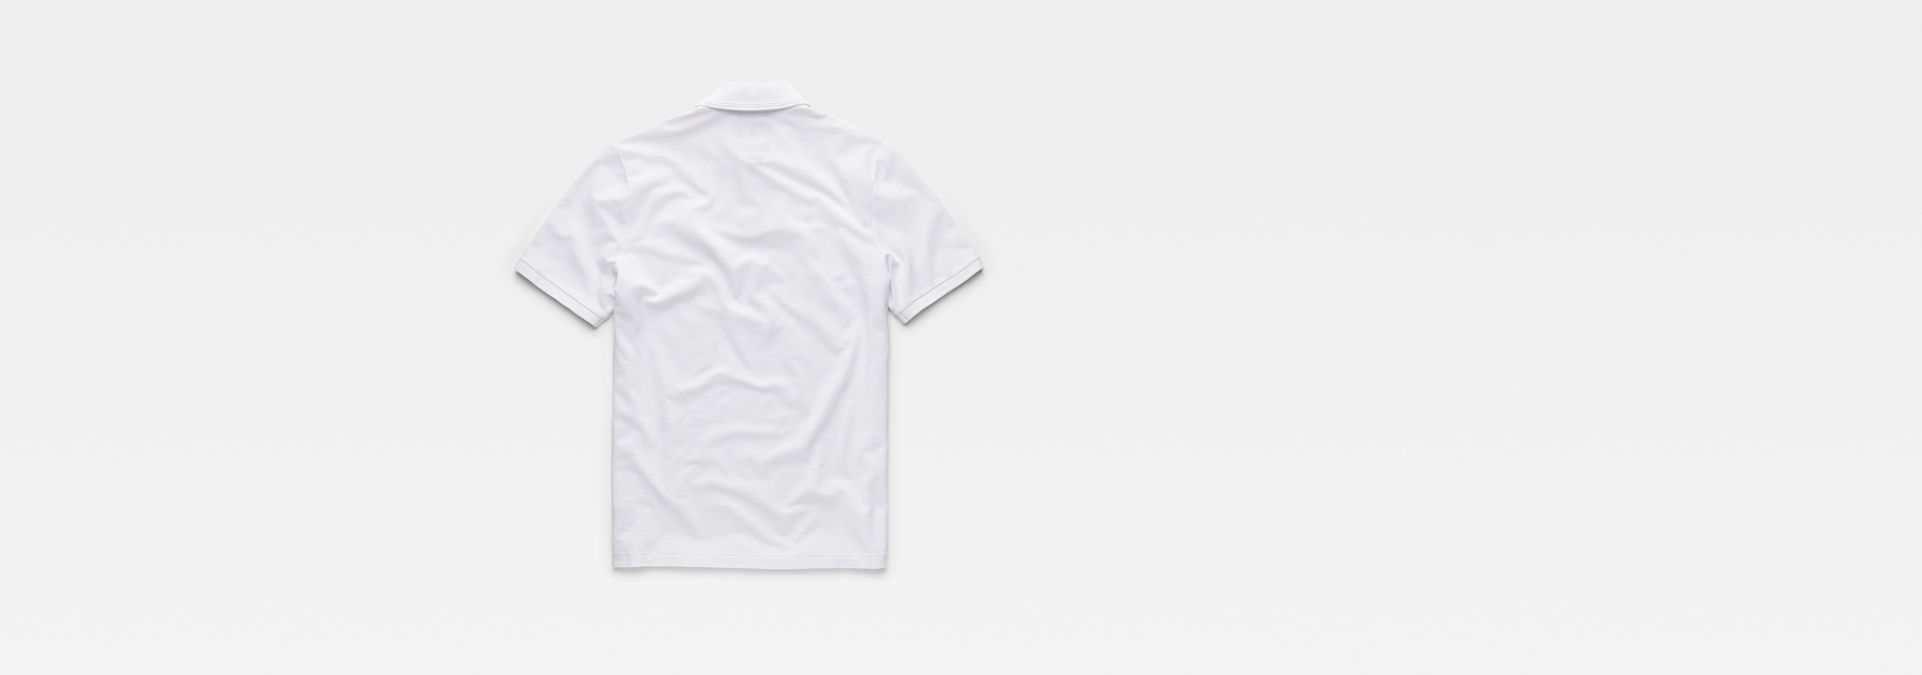 Dunda Polo Slim T Shirt | White | G Star RAW®